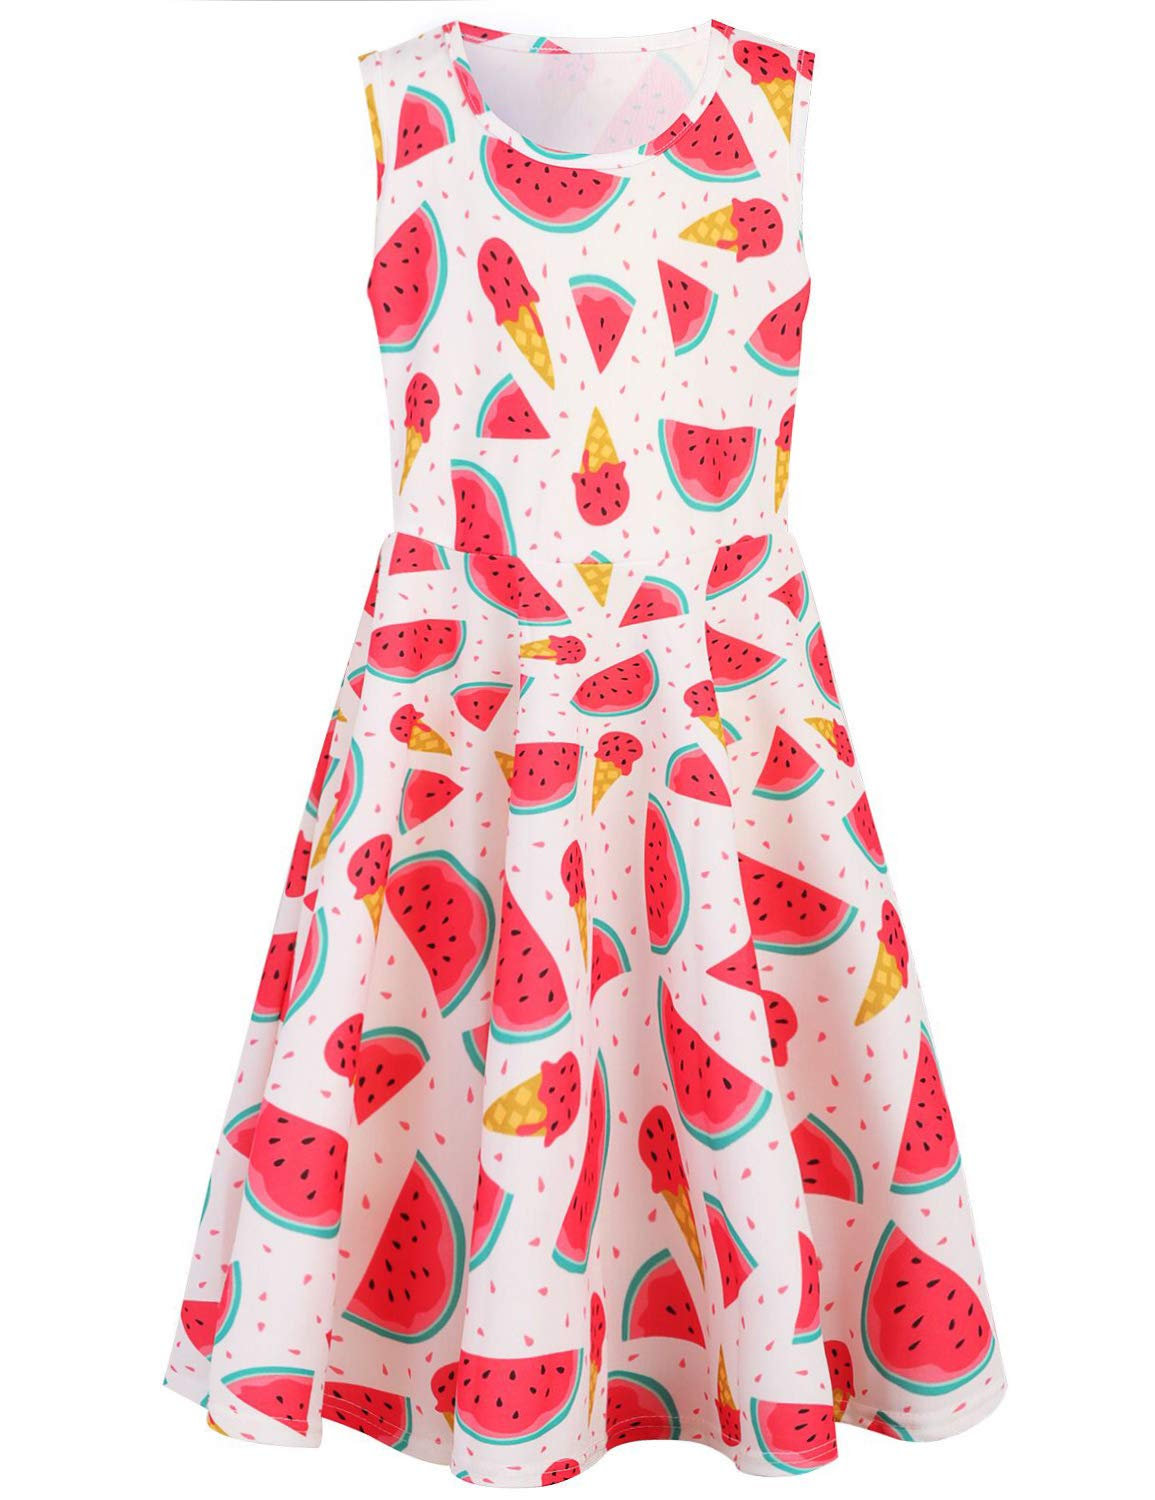 RAISEVERN Cute Girls Summer Dress Sleeveless Sweet Watermelon Ice Cream Design Printing Cool Holiday/Casual/Party Sundress(4-13Years)